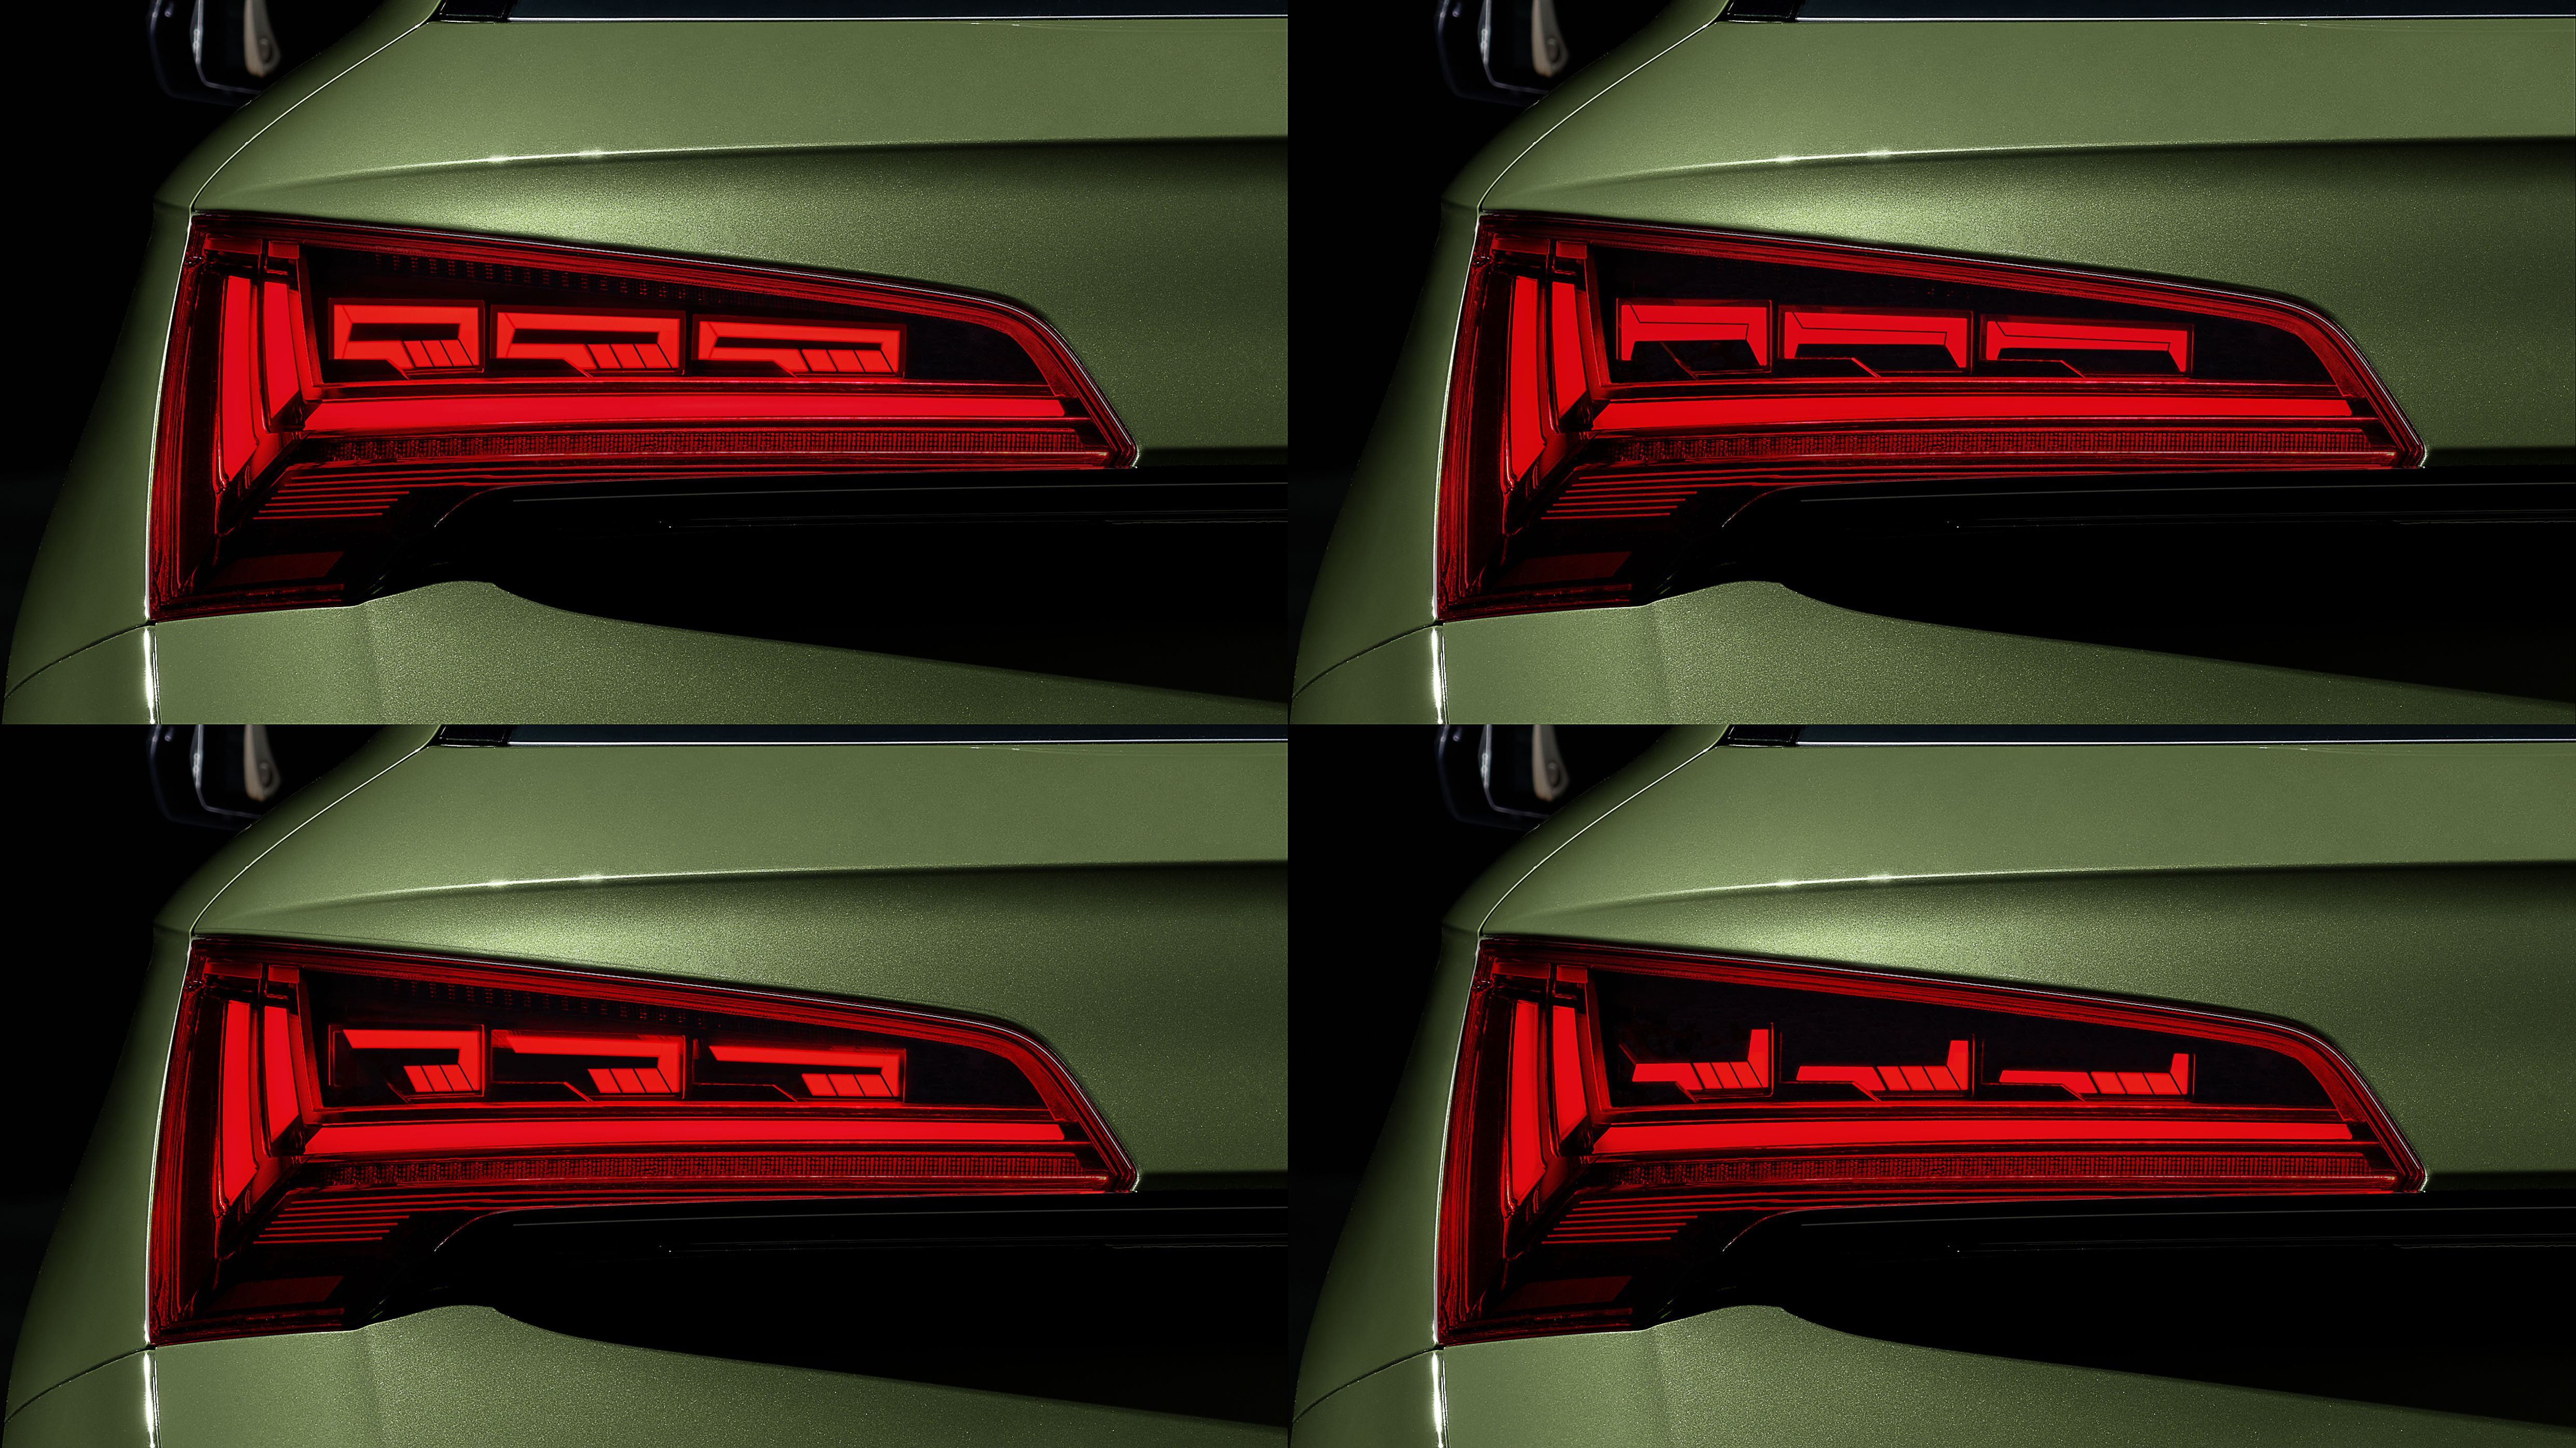 The highlight of Audi Q5 is the world's first OLED rear lights. These are split into three tiles of six segments each to create multiple designs and signatures from a single item of hardware. These also have practical usability.